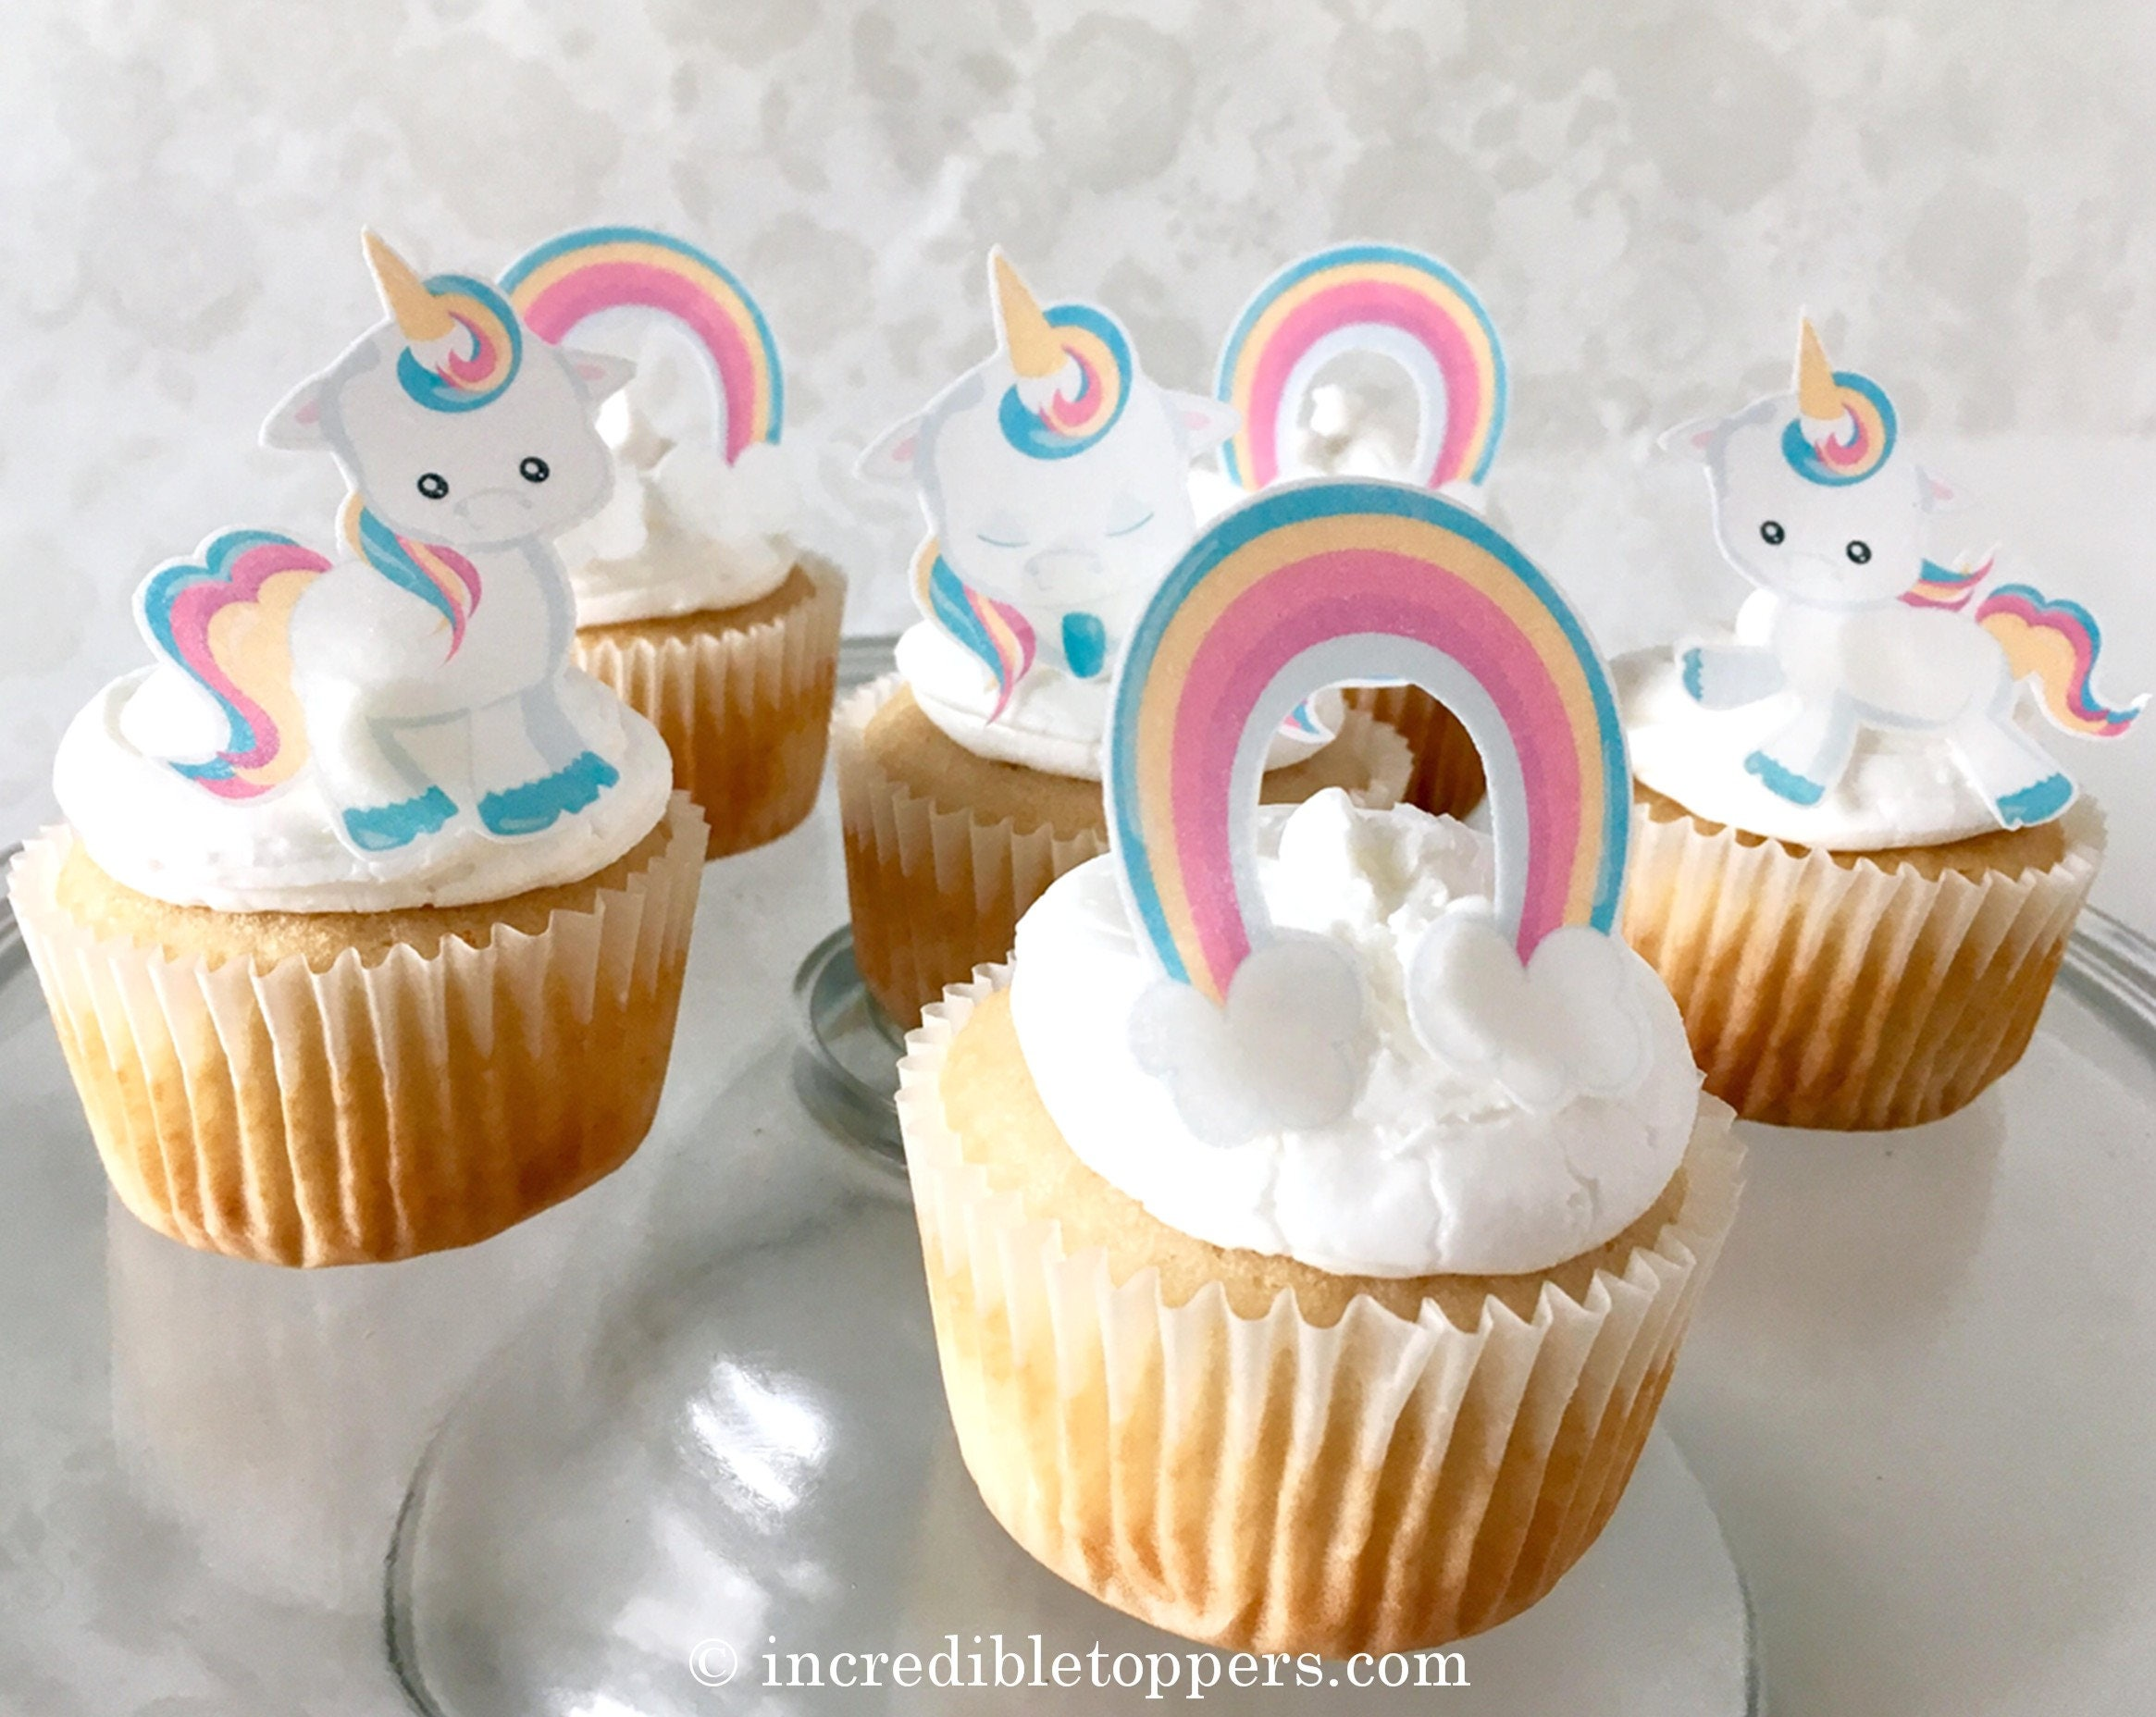 Baby Unicorn Birthday Cake Topper Edible Rainbows and Unicorn